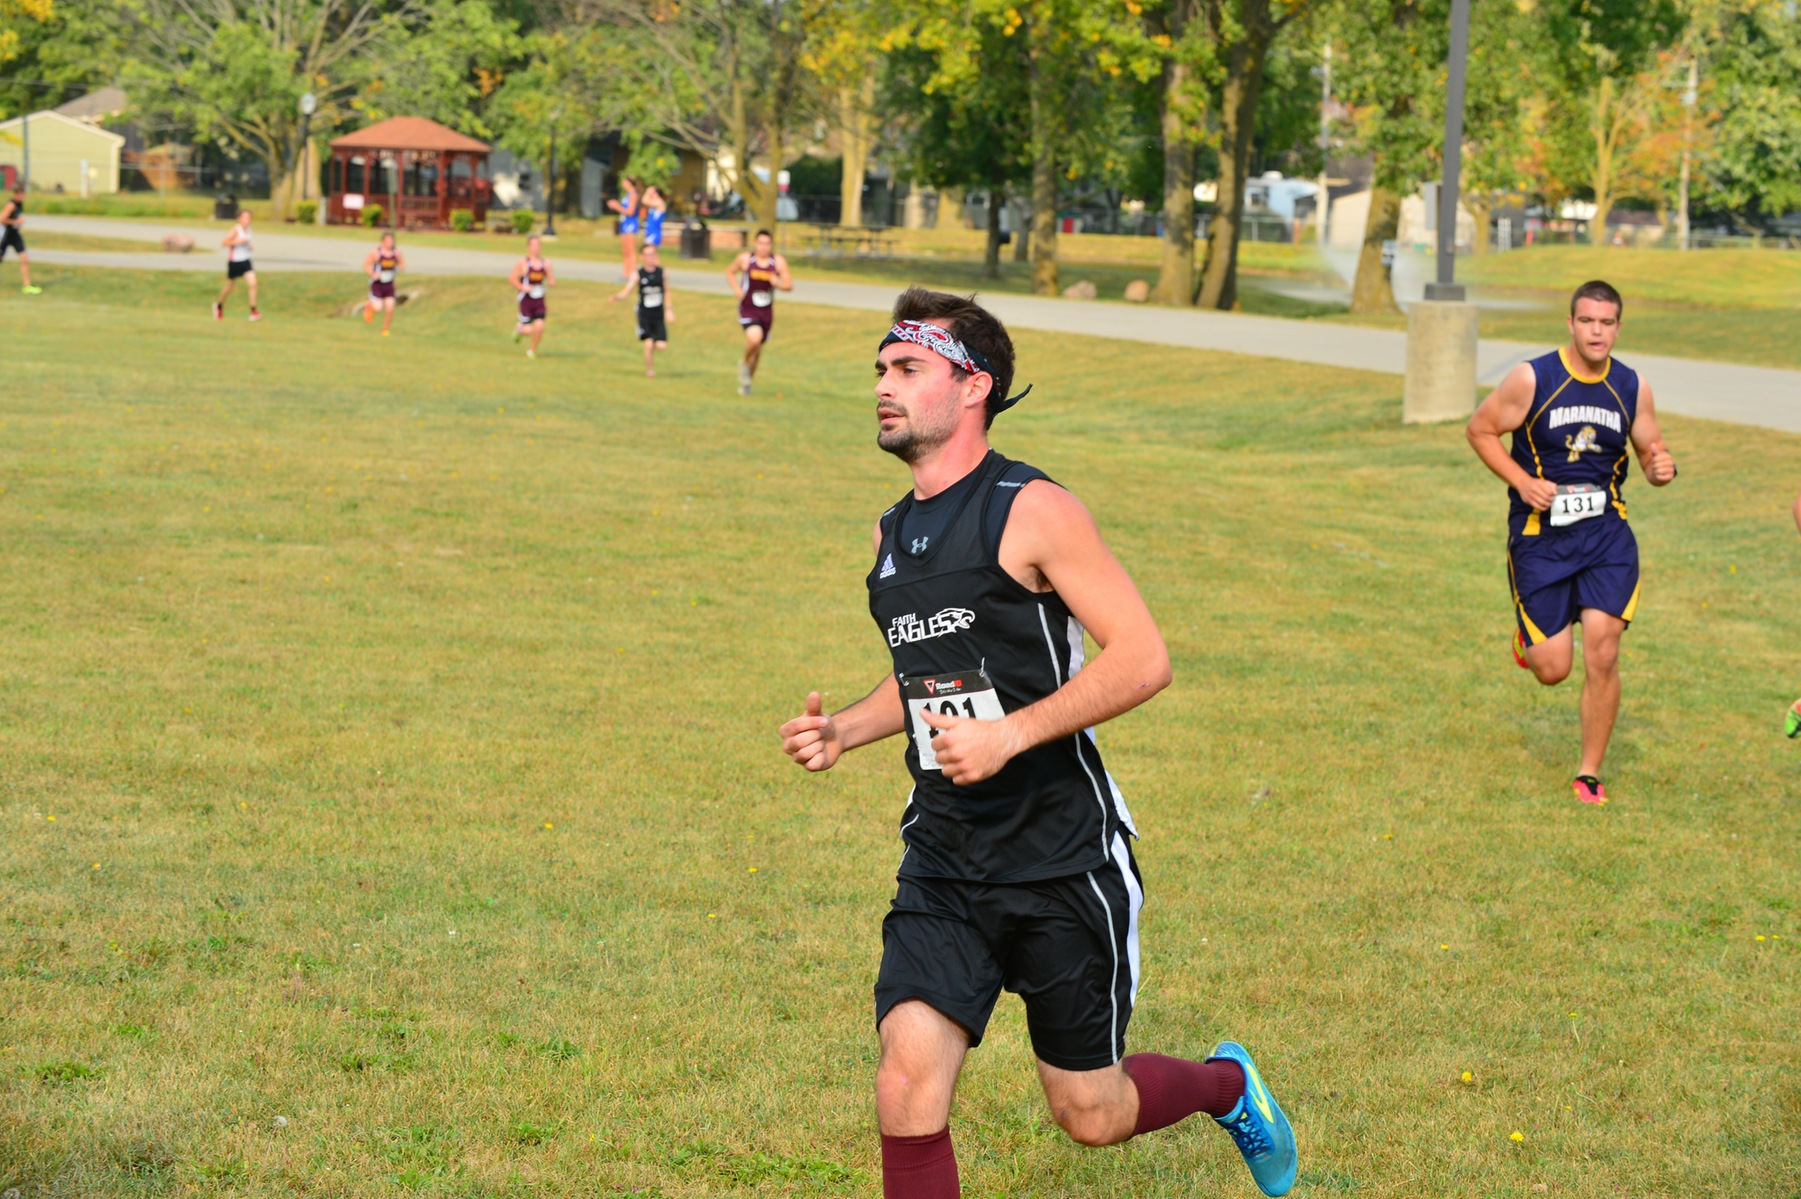 XC Team Ends Regular Season